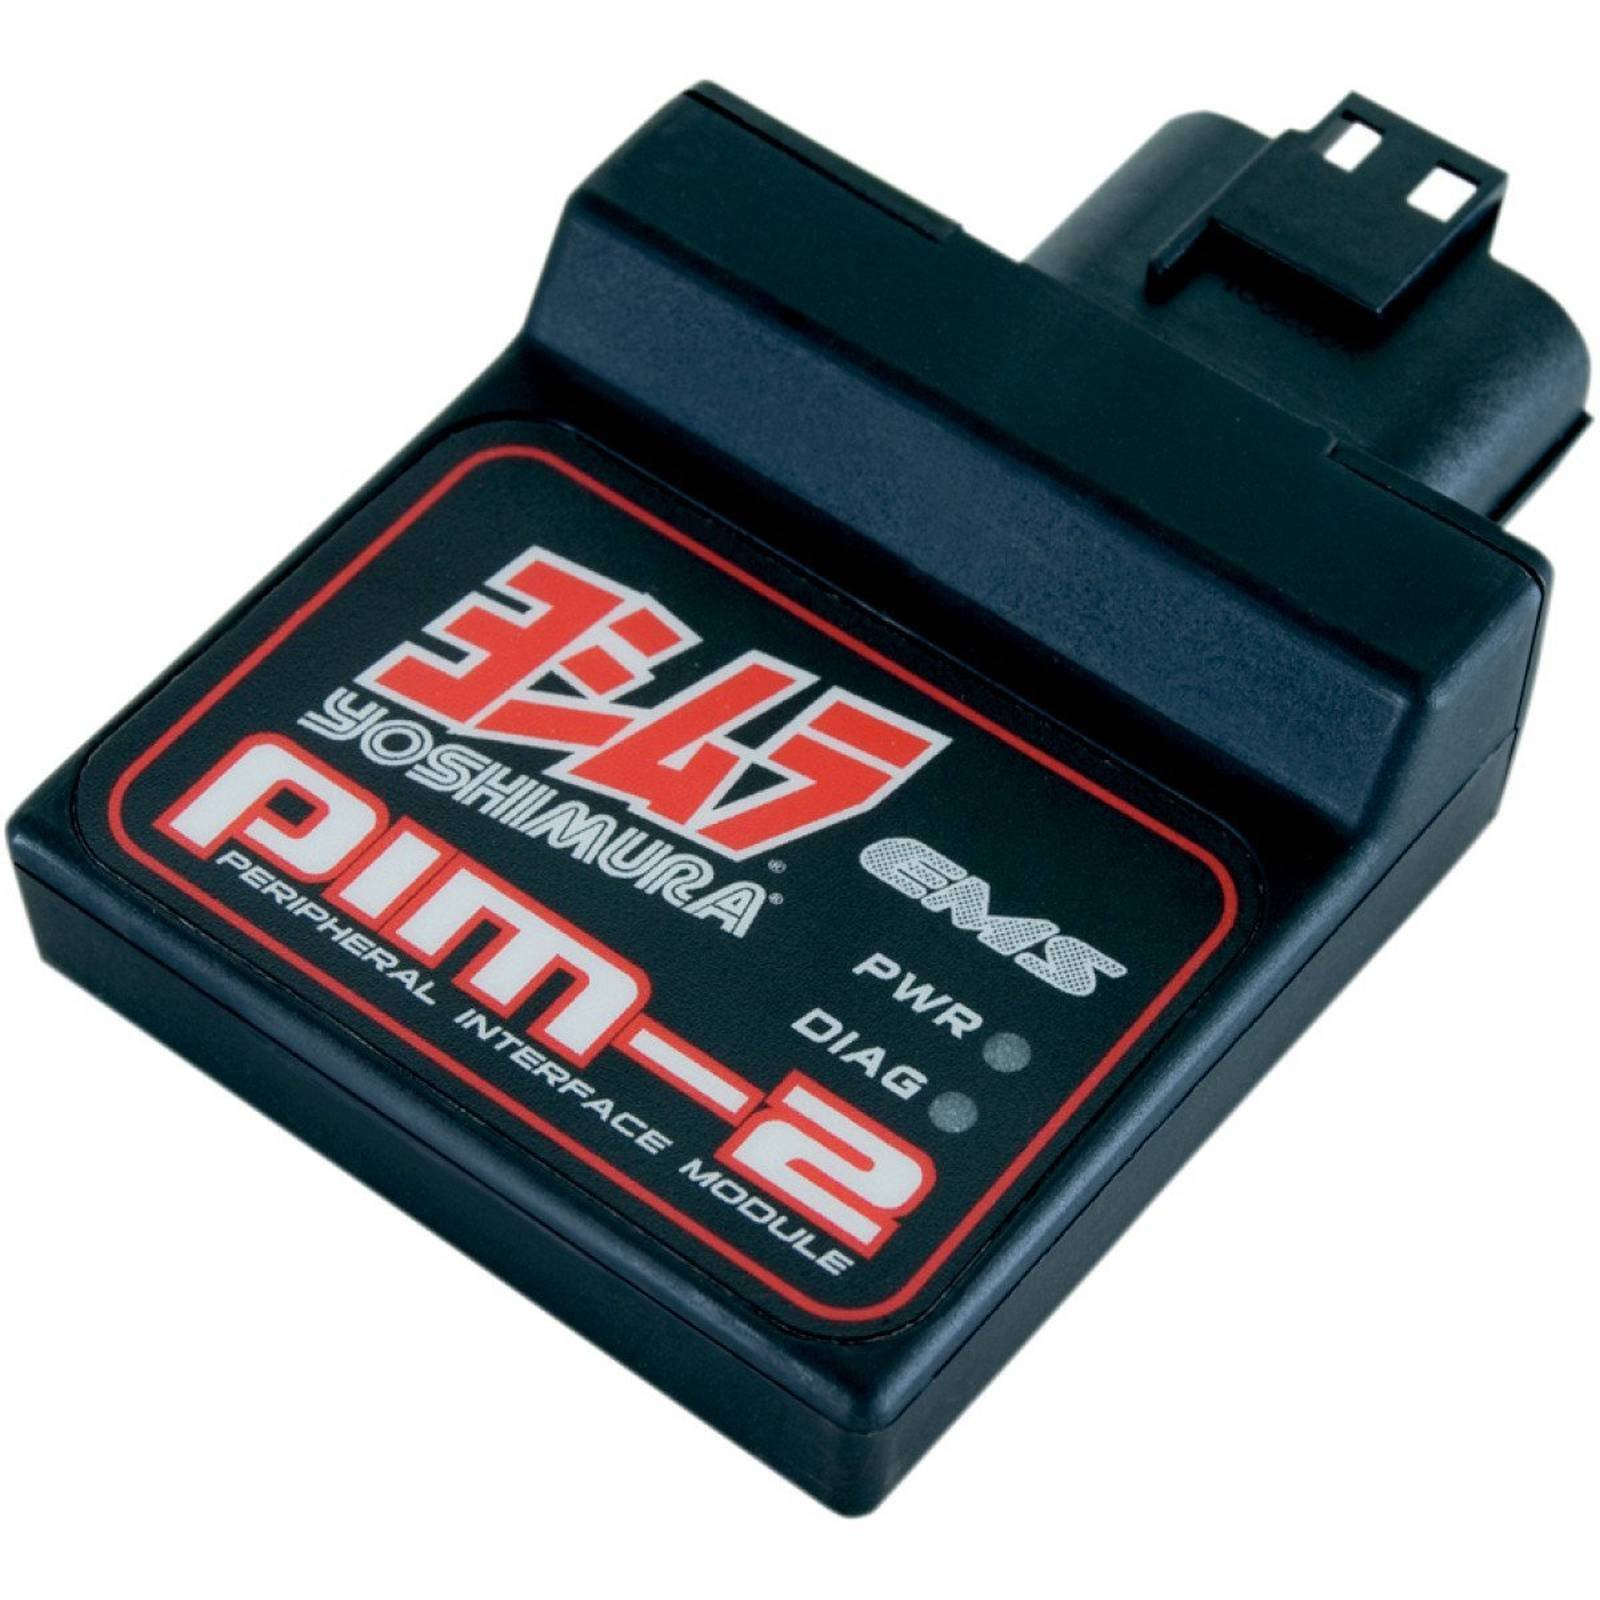 Yoshimura PIM2 EMS (Peripheral Interface Module-2) - Arctic Cat Wildcat 1000 2012 - 600XX391000 TR